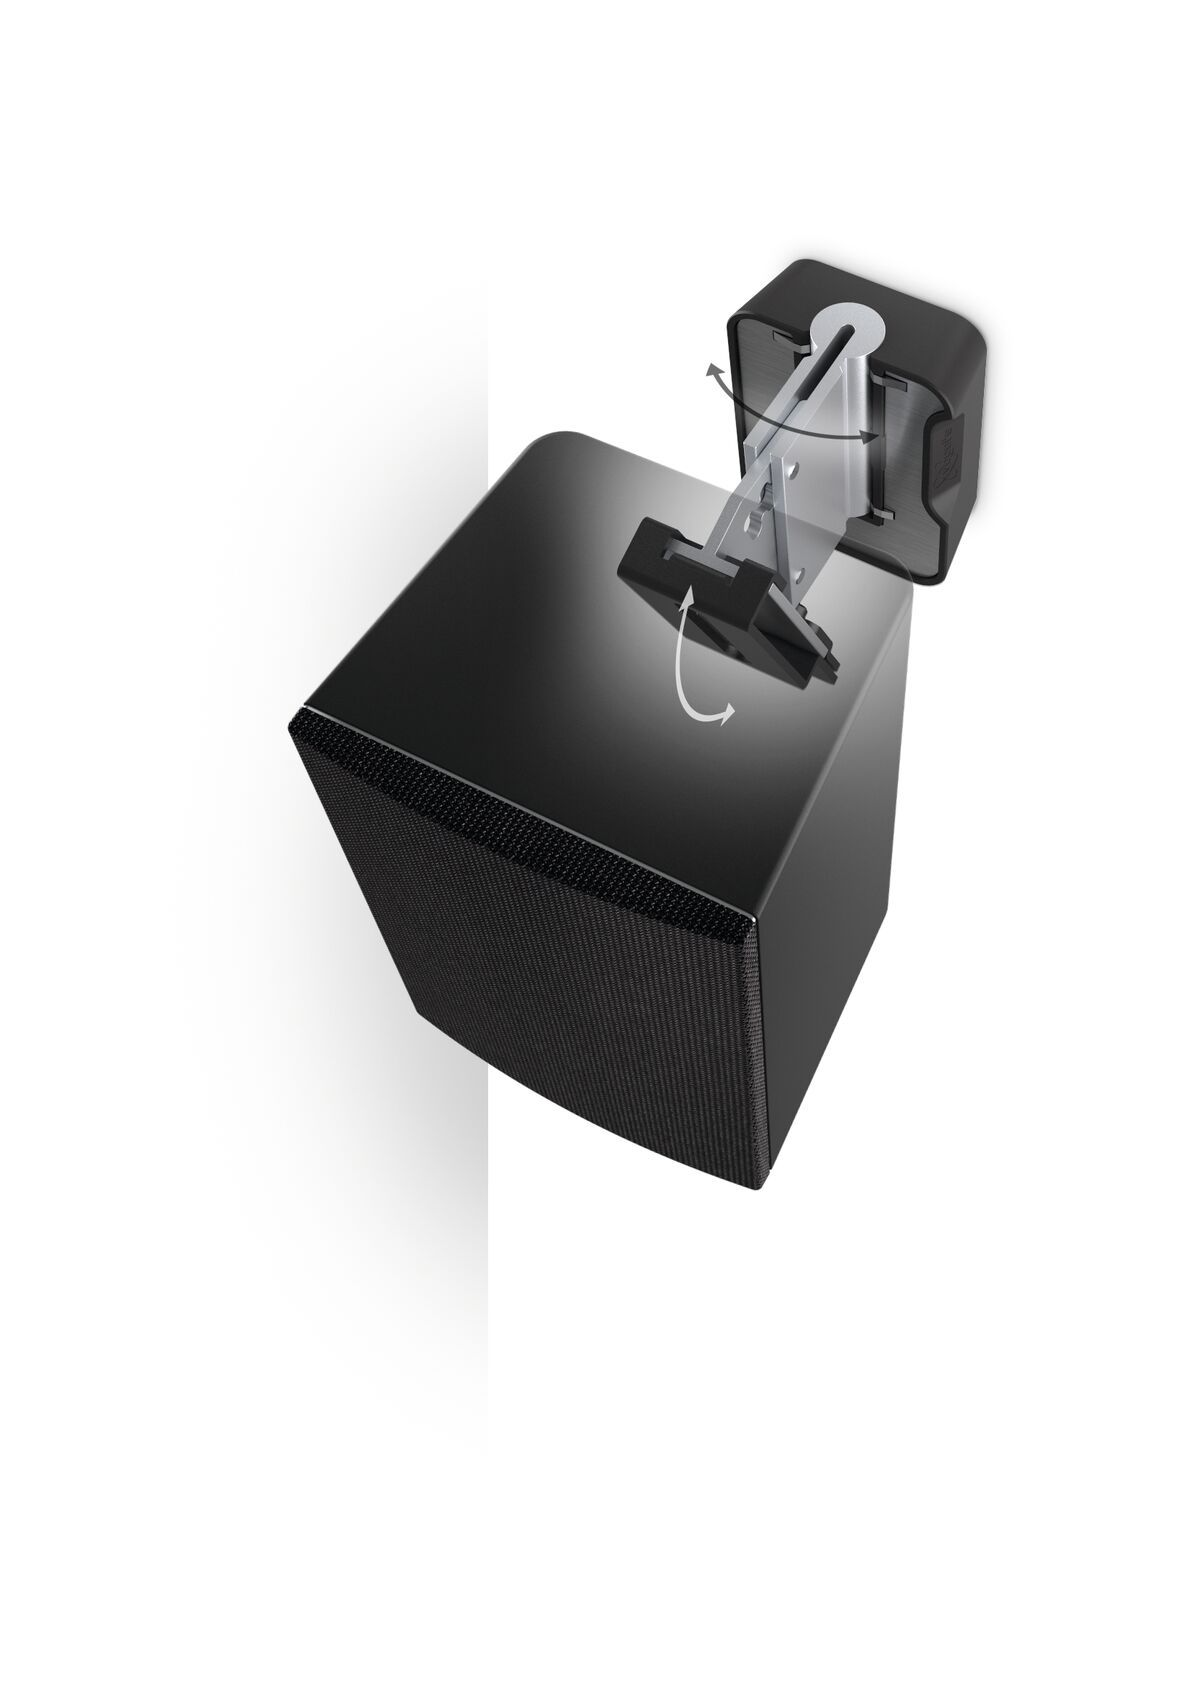 Vogel's SOUND 3200 Speaker Wall Mount (black) - Ideally suited for: Universal - Max. weight load: 5 kg - Top view